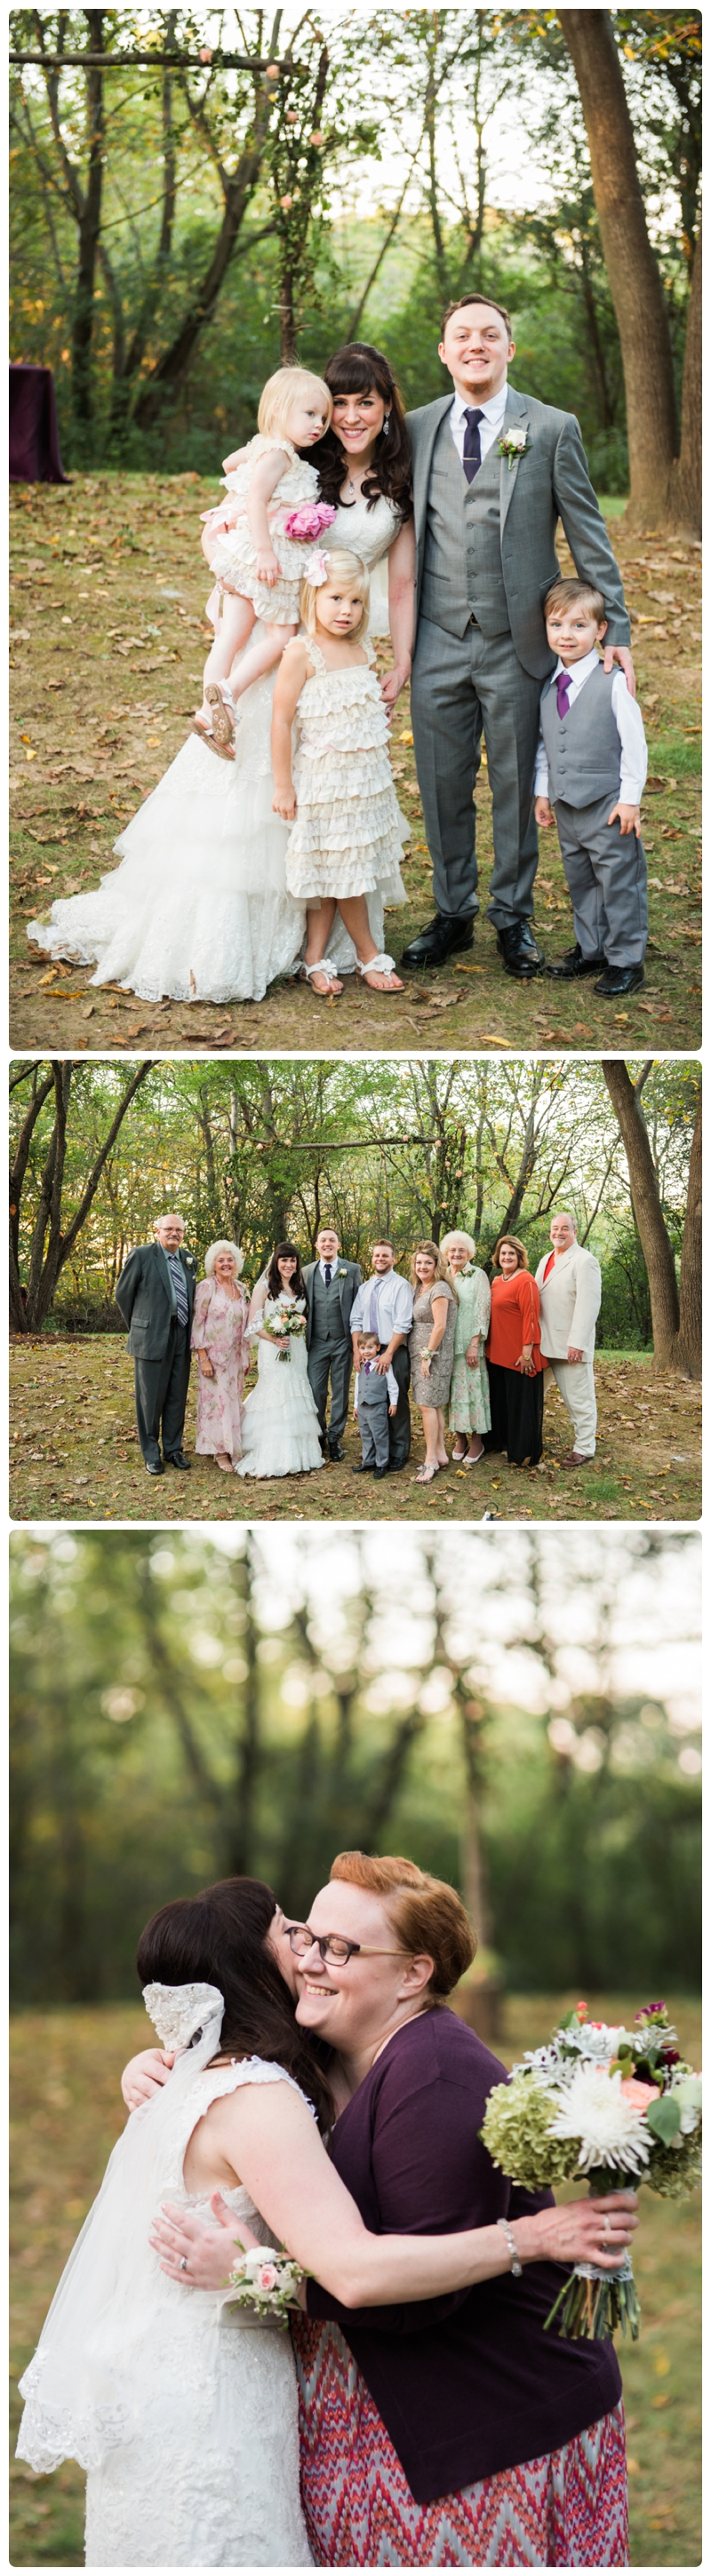 Backyard forest wedding in the Chicago suburbs by Rachael Foster Photography_0053.jpg